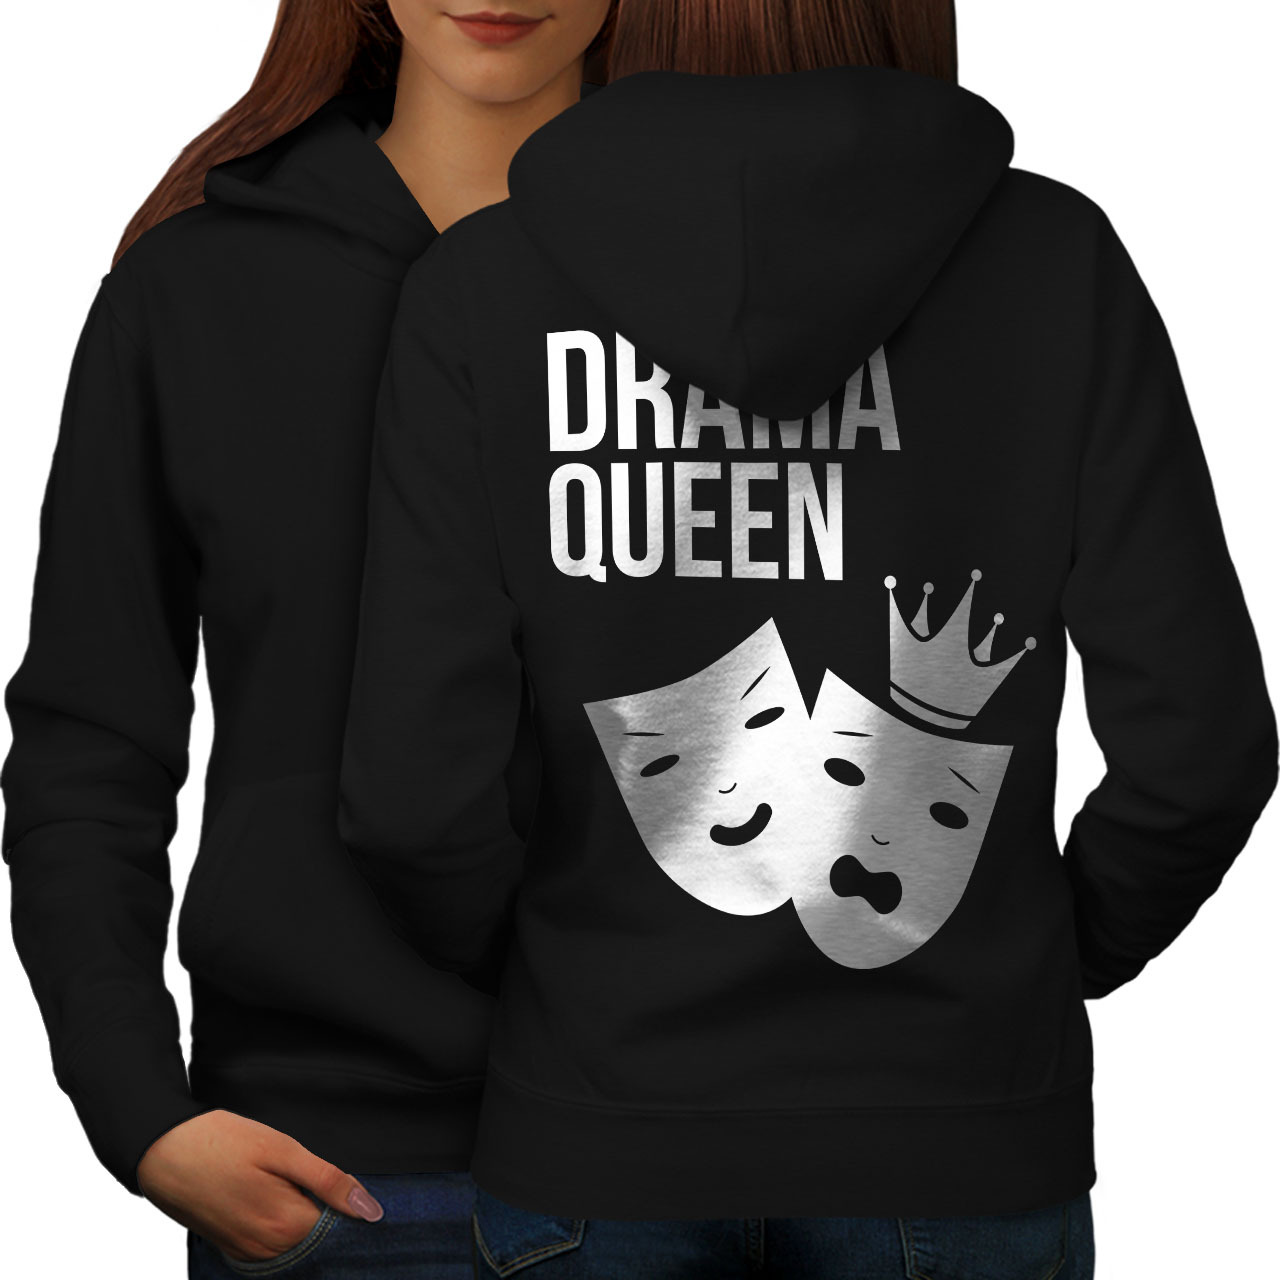 Primary image for Drama Queen Cool Funny Sweatshirt Hoody Mask Emotion Women Hoodie Back